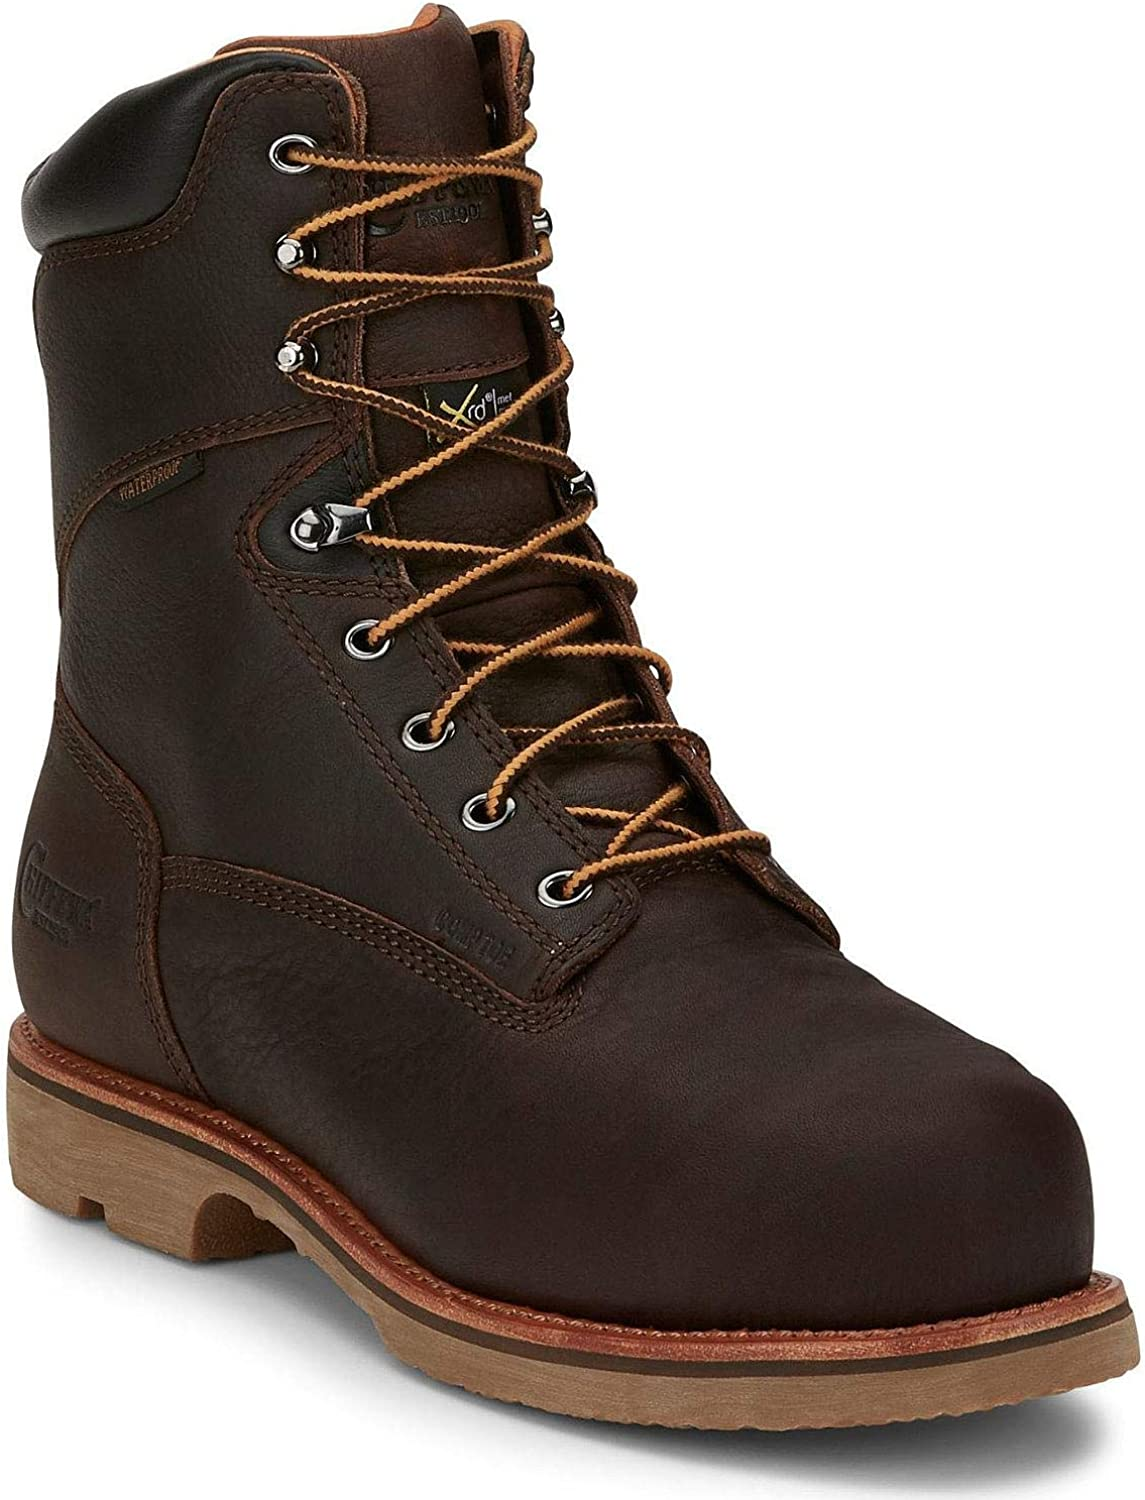 Max 82% OFF Chippewa Men's Serious Plus Waterproof Boot Work Composite High quality Toe